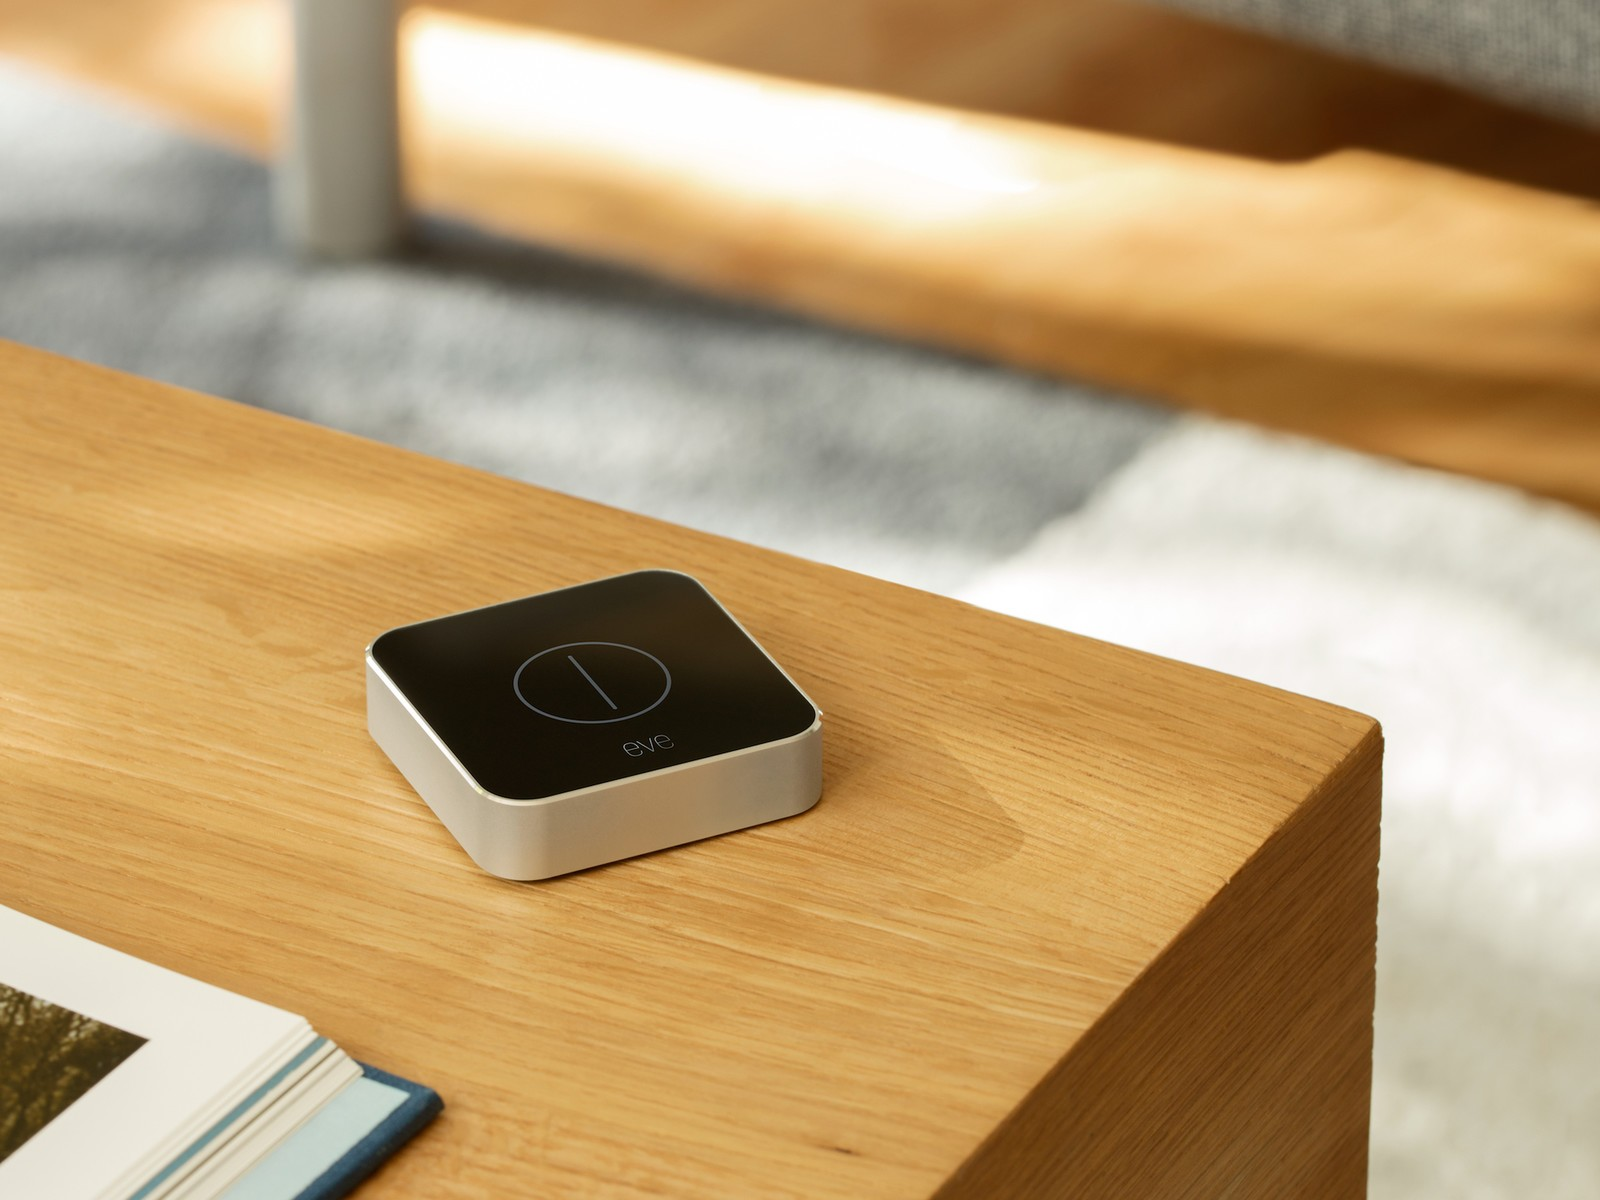 The square Eve Button resting atop a white shelf